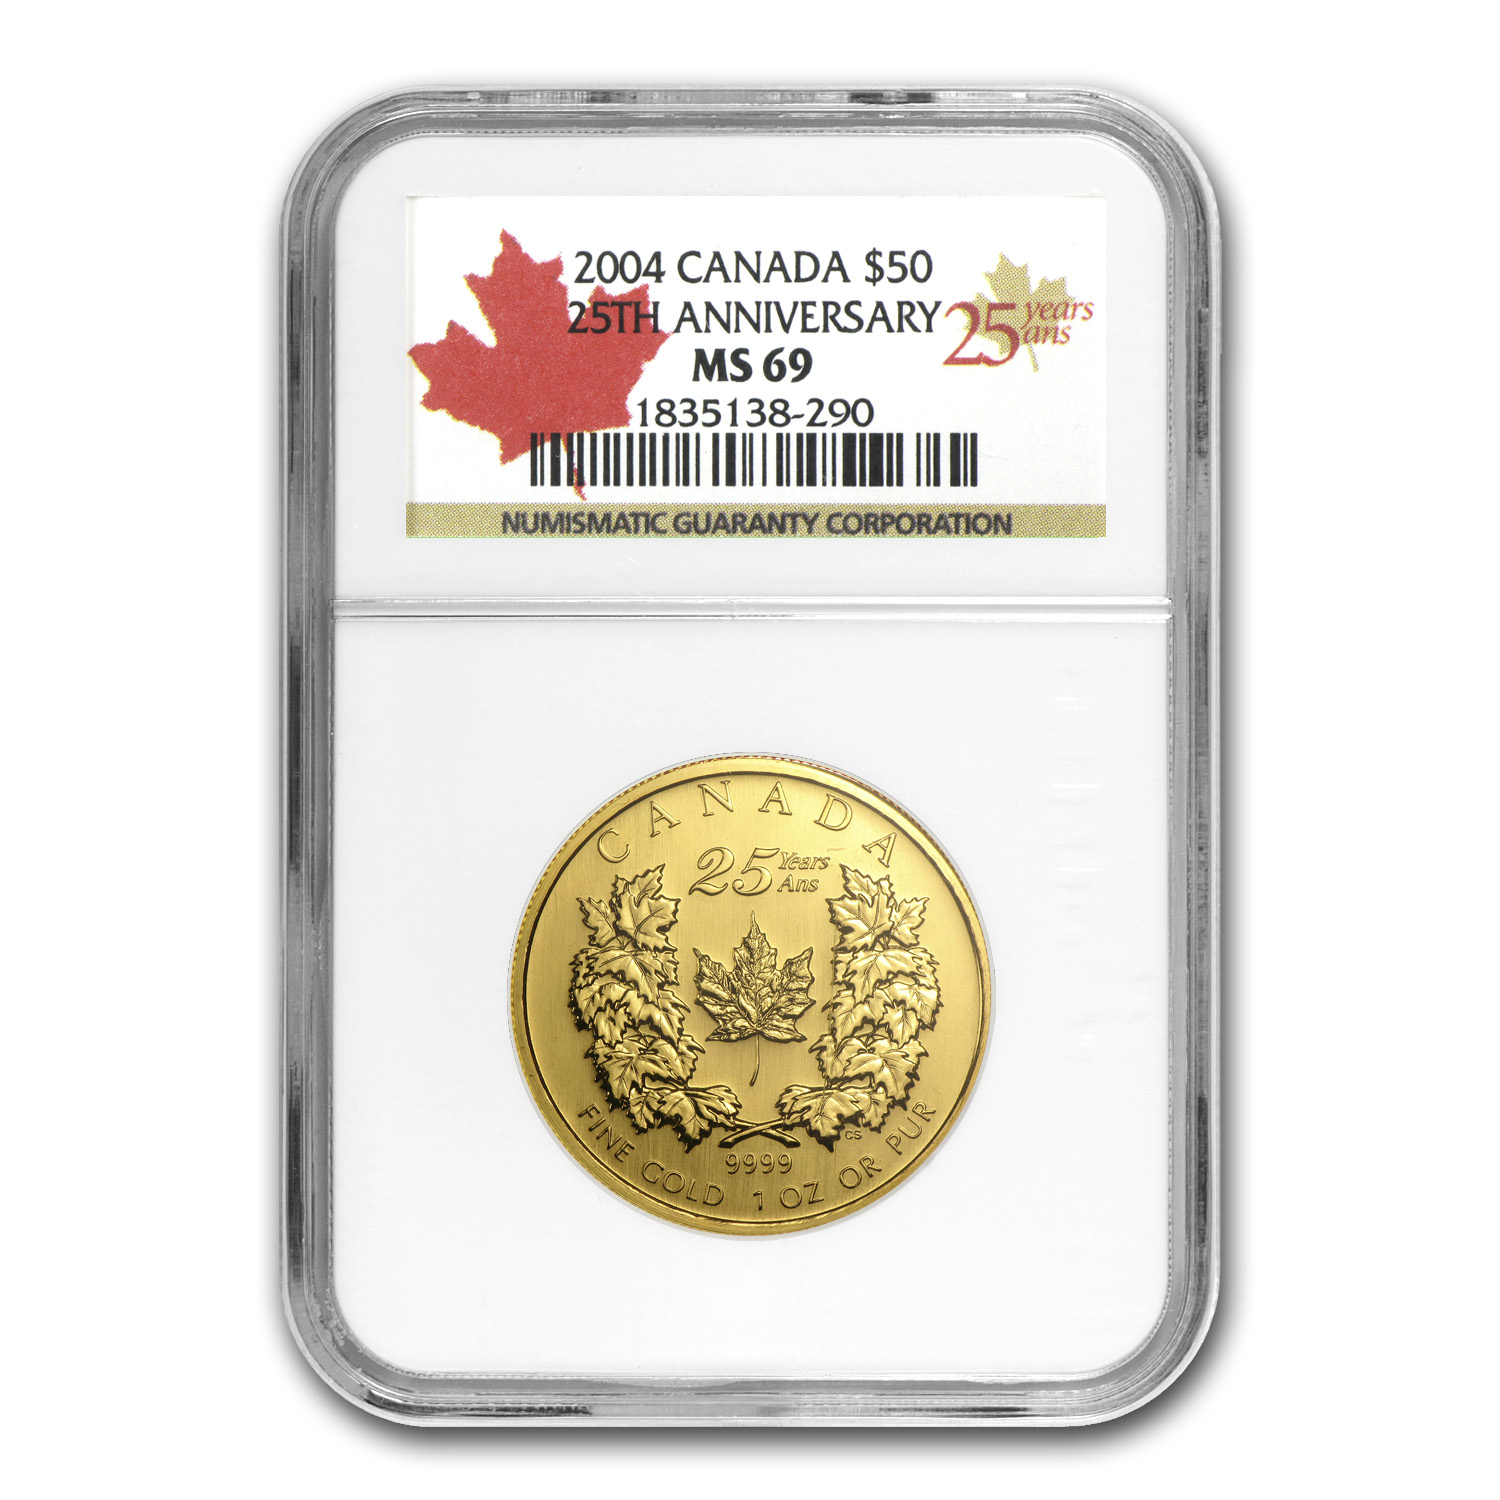 2004 Canada 1 oz Gold Maple Leaf MS-69 NGC (25th Anniv)